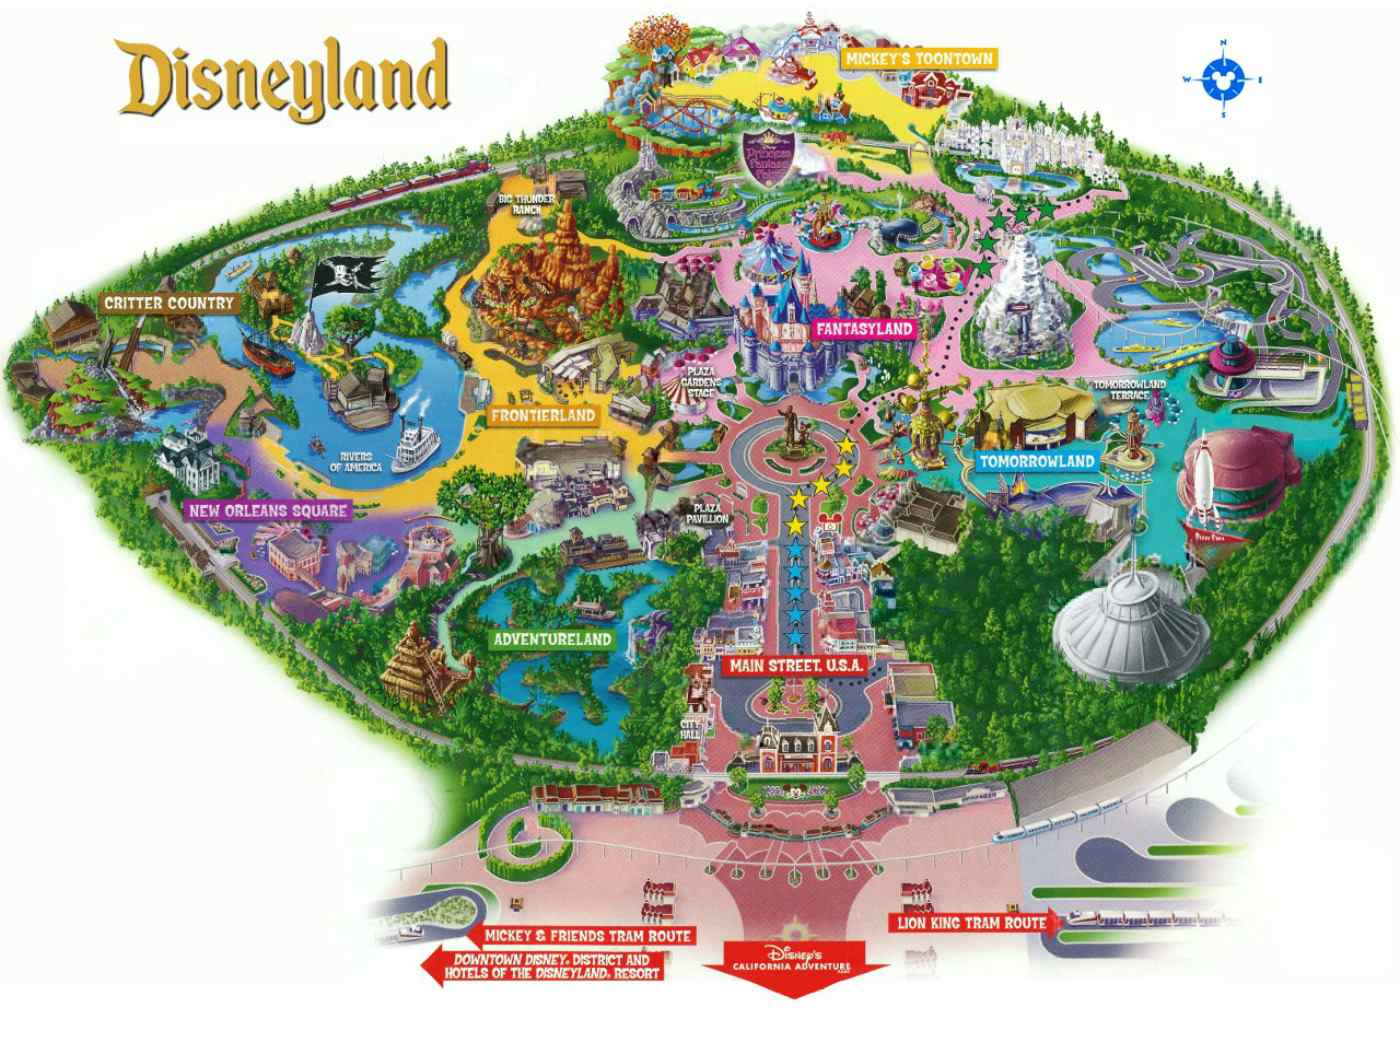 Disneyland Resort Map Maps of Disneyland Resort in Anaheim, California